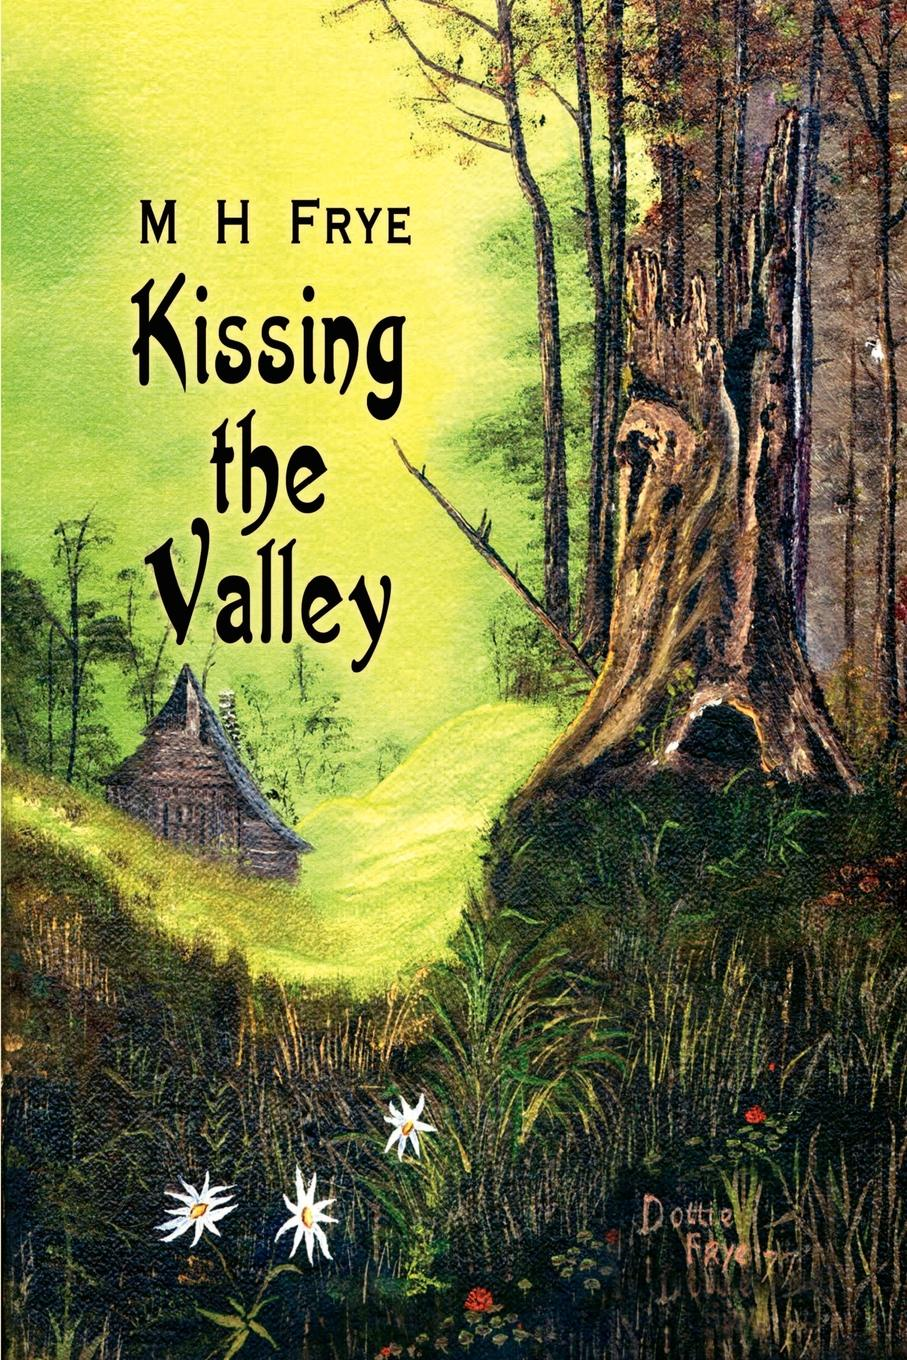 M. H. Frye Kissing the Valley